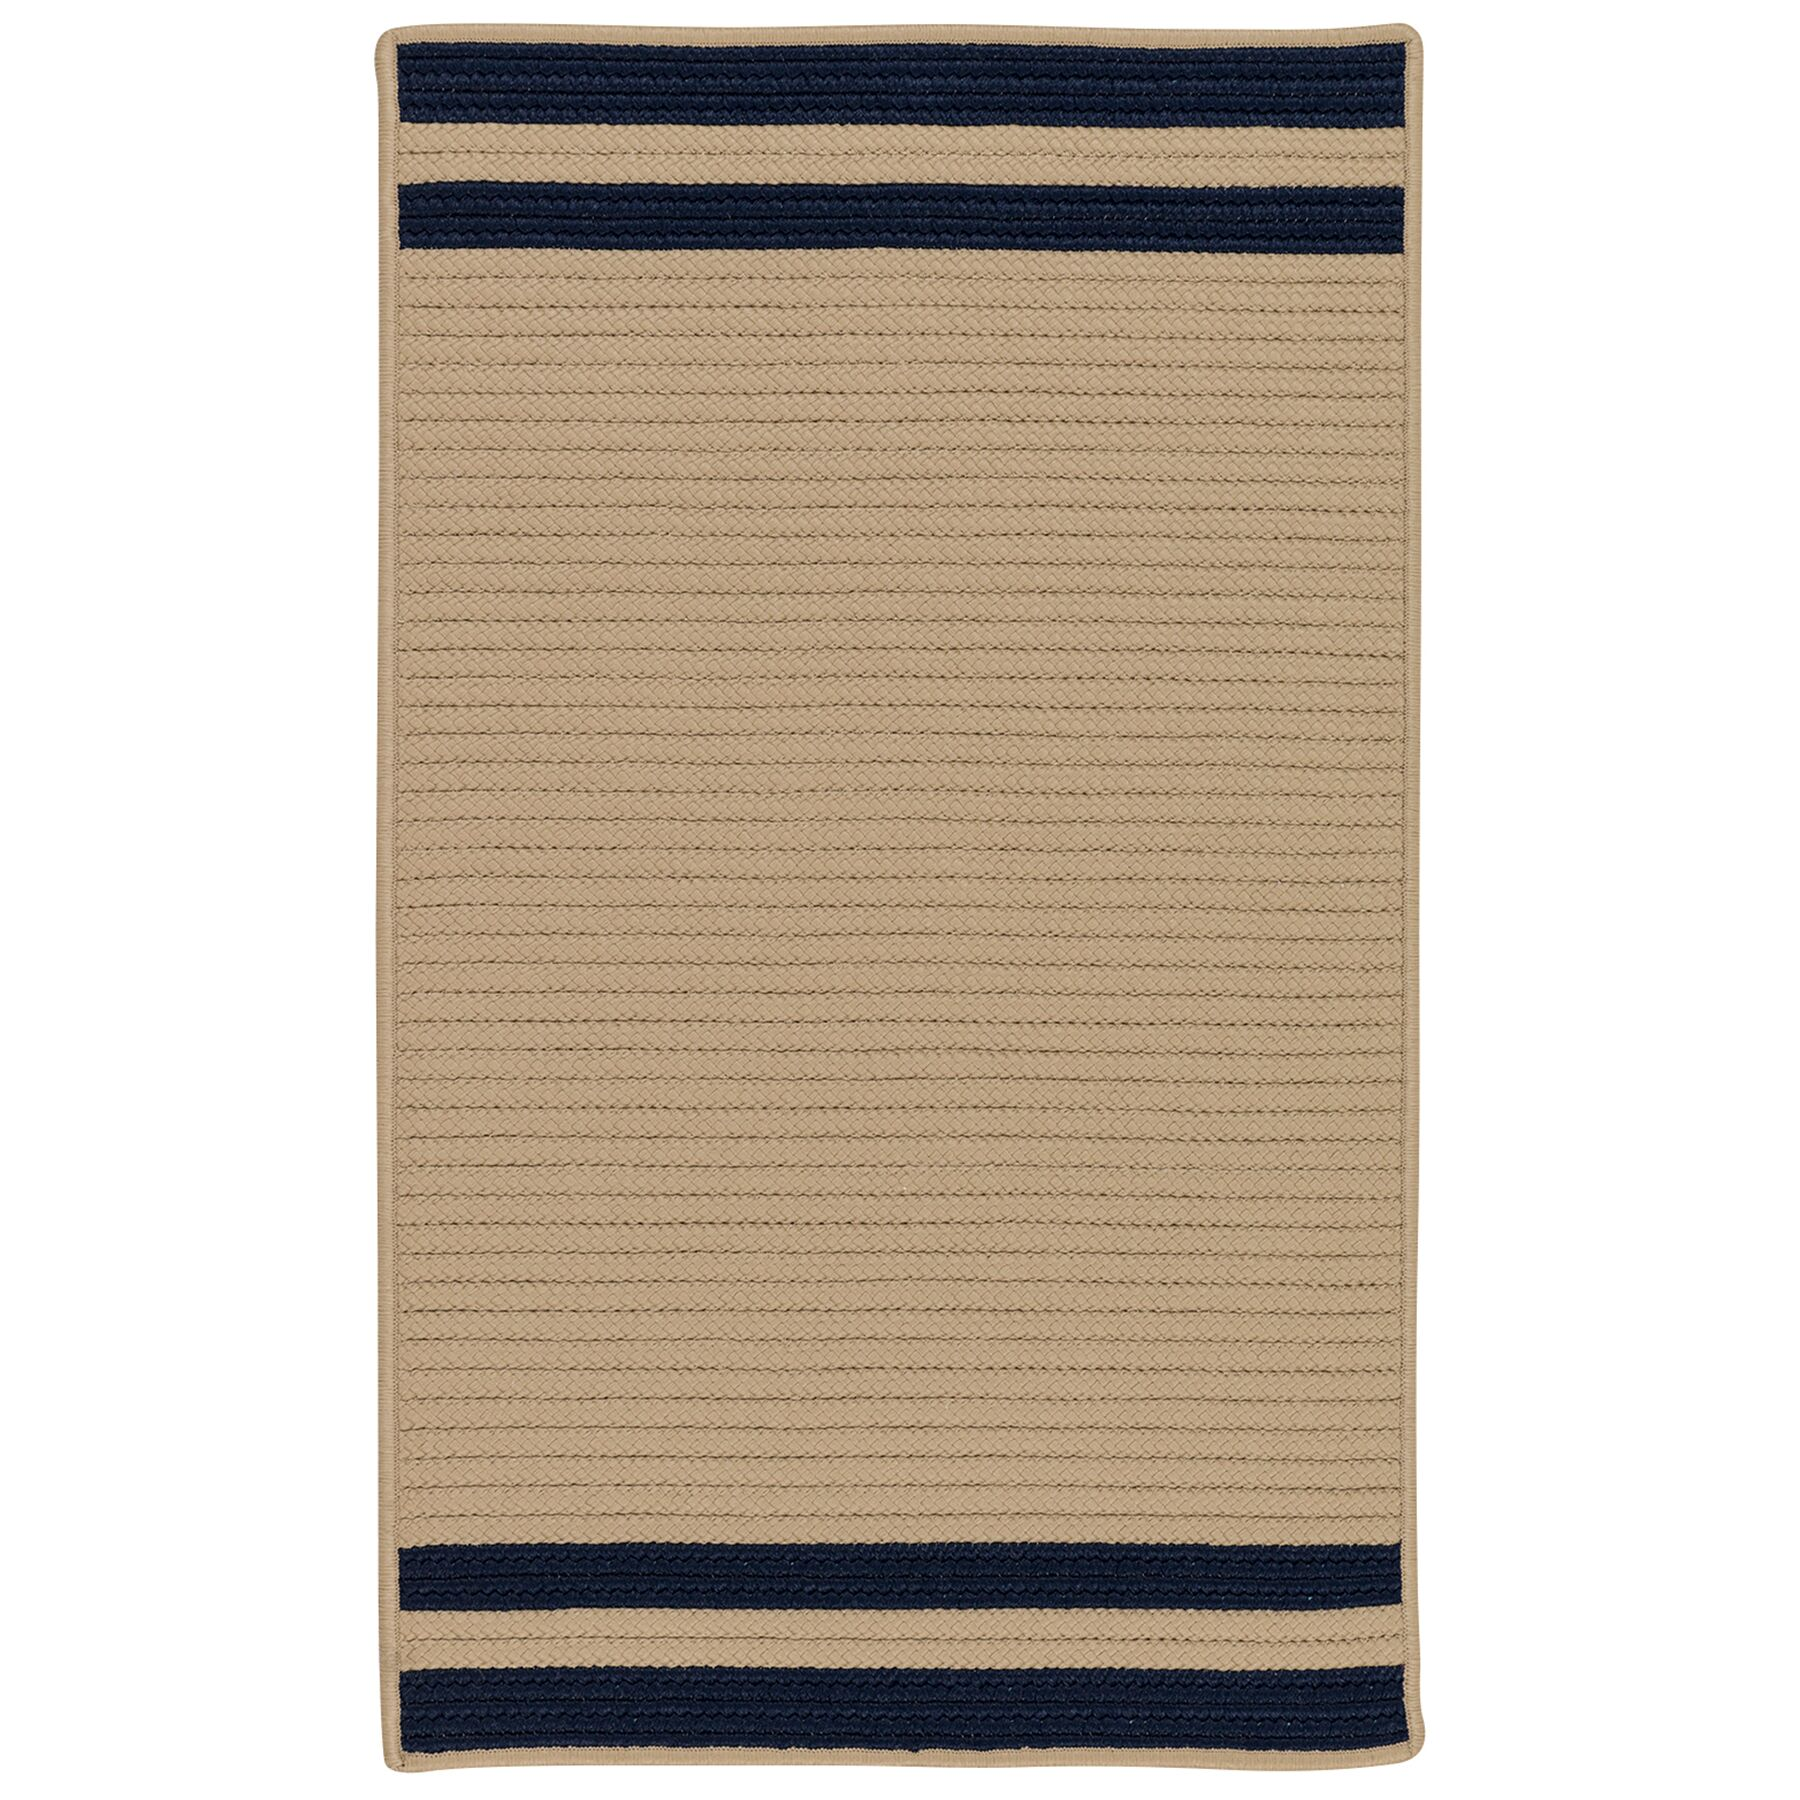 Kellie Stripe Hand-Braided Brown/Navy Indoor/Outdoor Area Rug Rug Size: Rectangle 5' x 7'